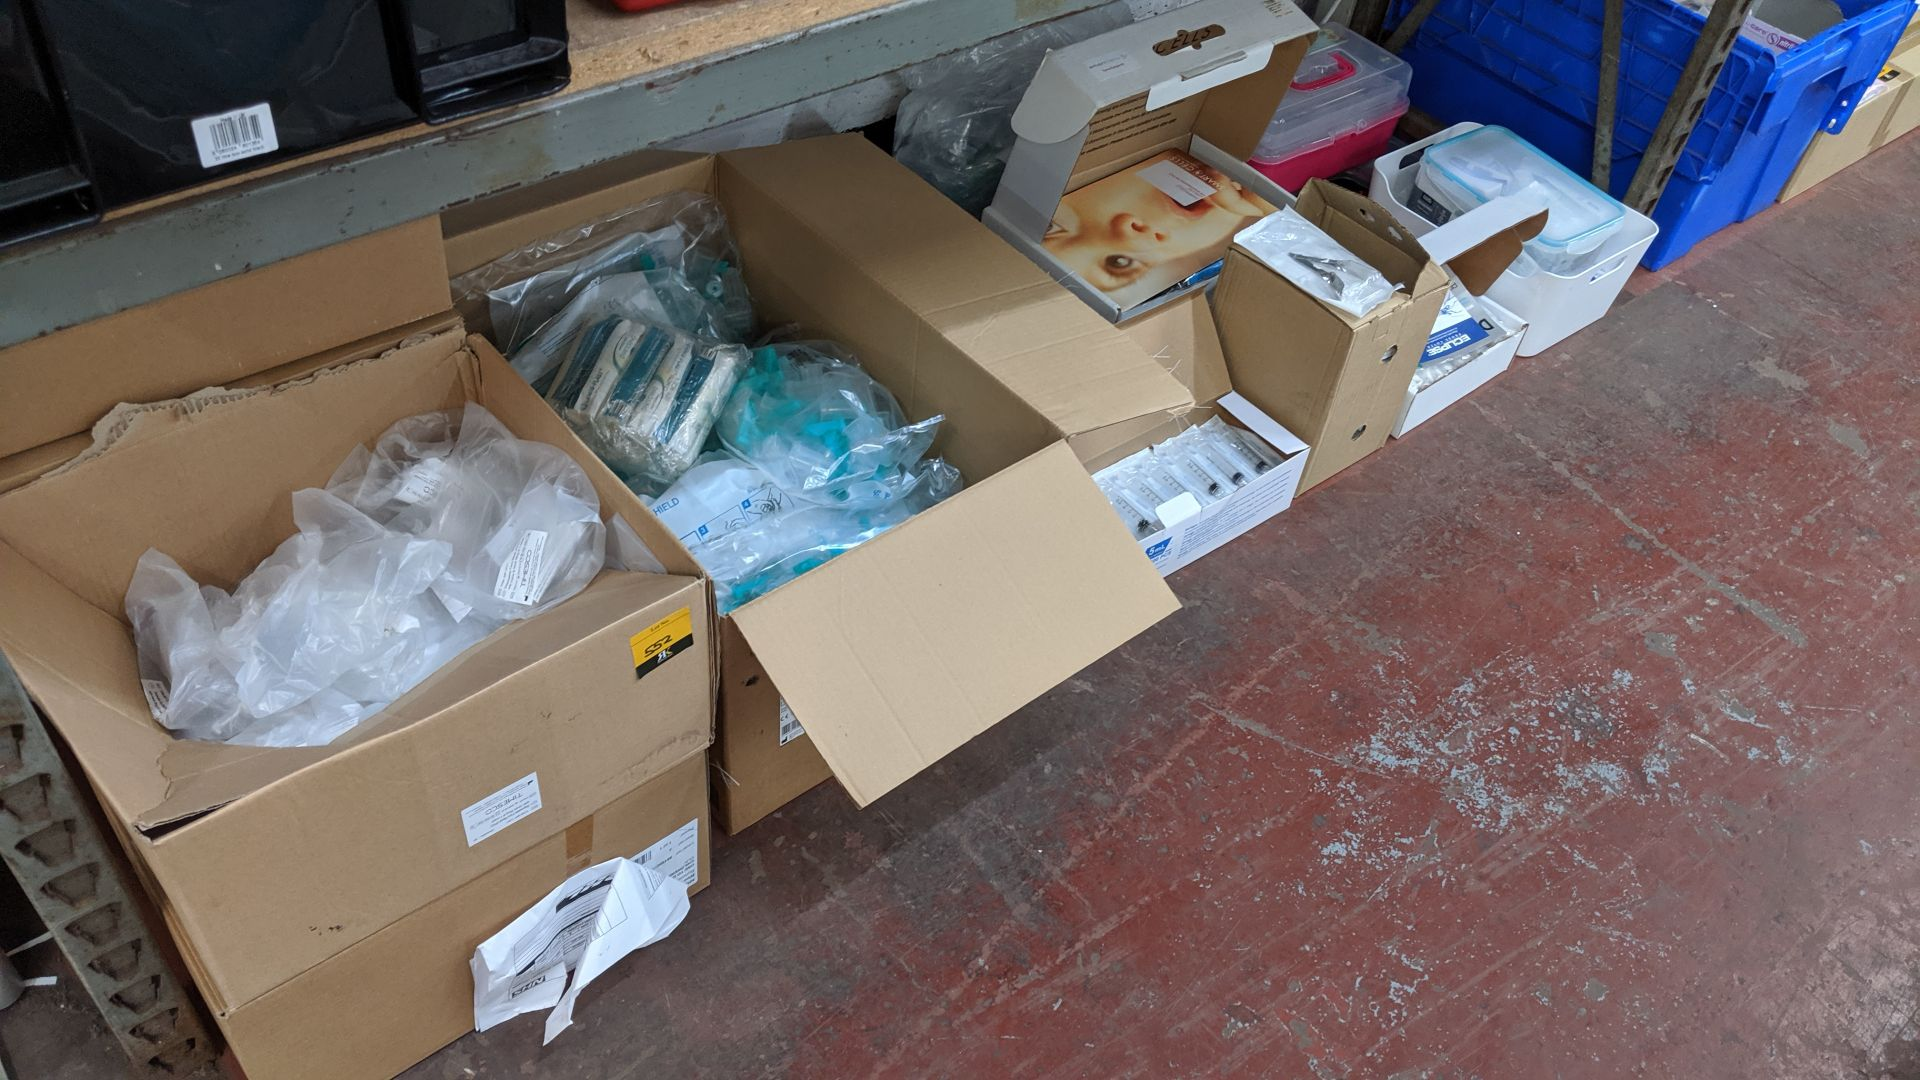 Lot 552 - Contents of a bay of medical supplies including safety tube holders, syringes, storage cases &